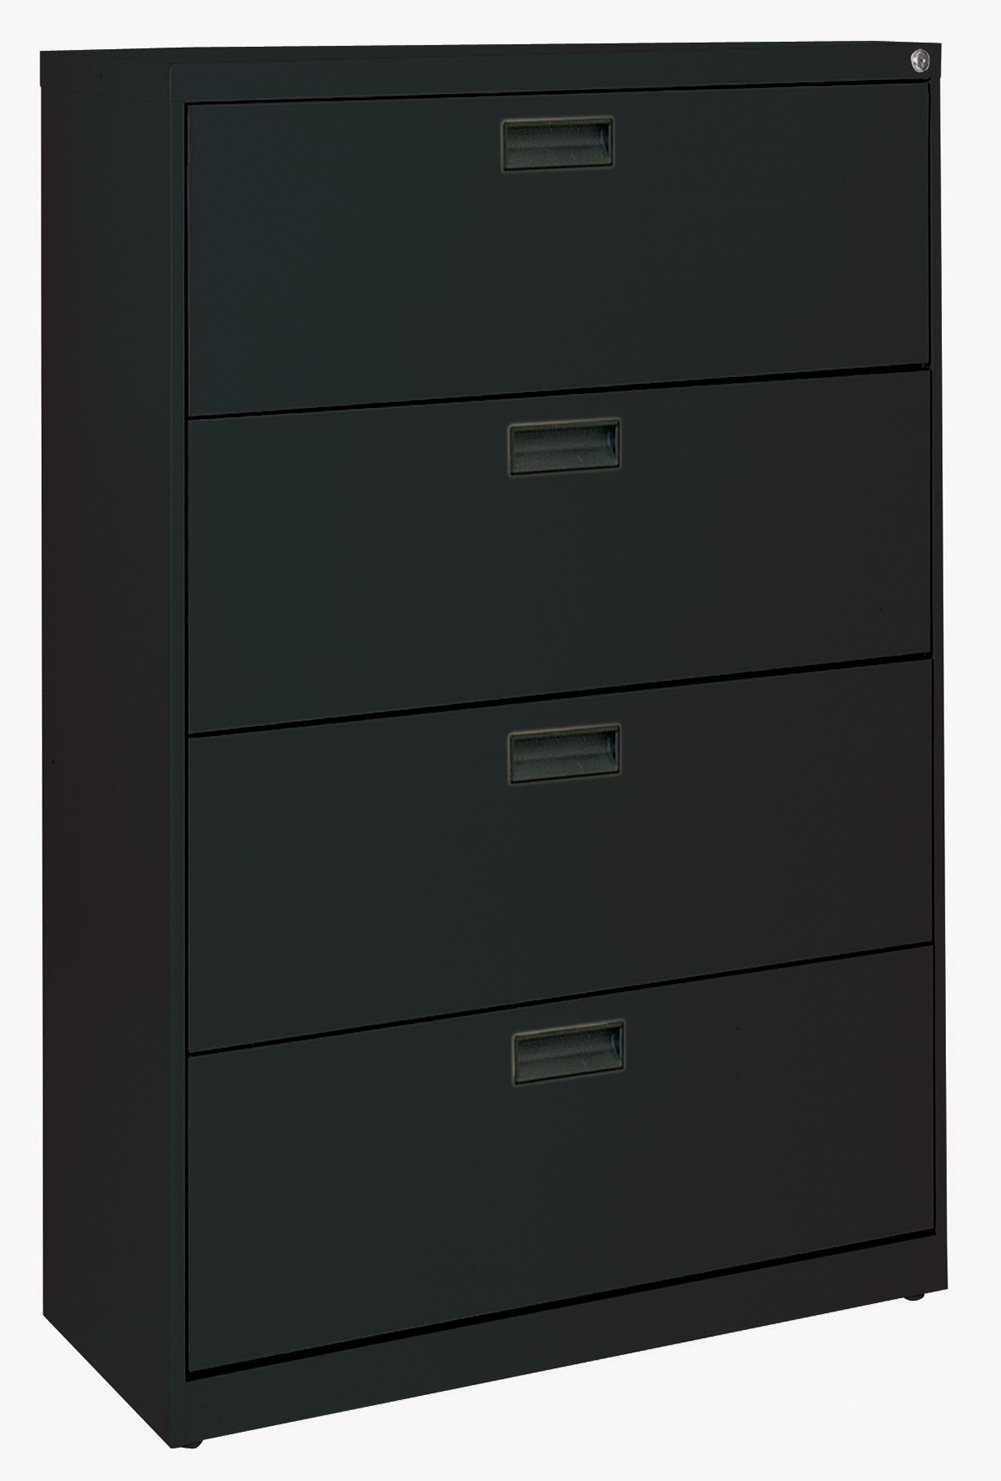 Sandusky 400 Series Black Steel Lateral File Cabinet with Plastic Handle, 30'' Width x 53-1/4'' Height x 18'' Depth, 4 Drawers by Sandusky